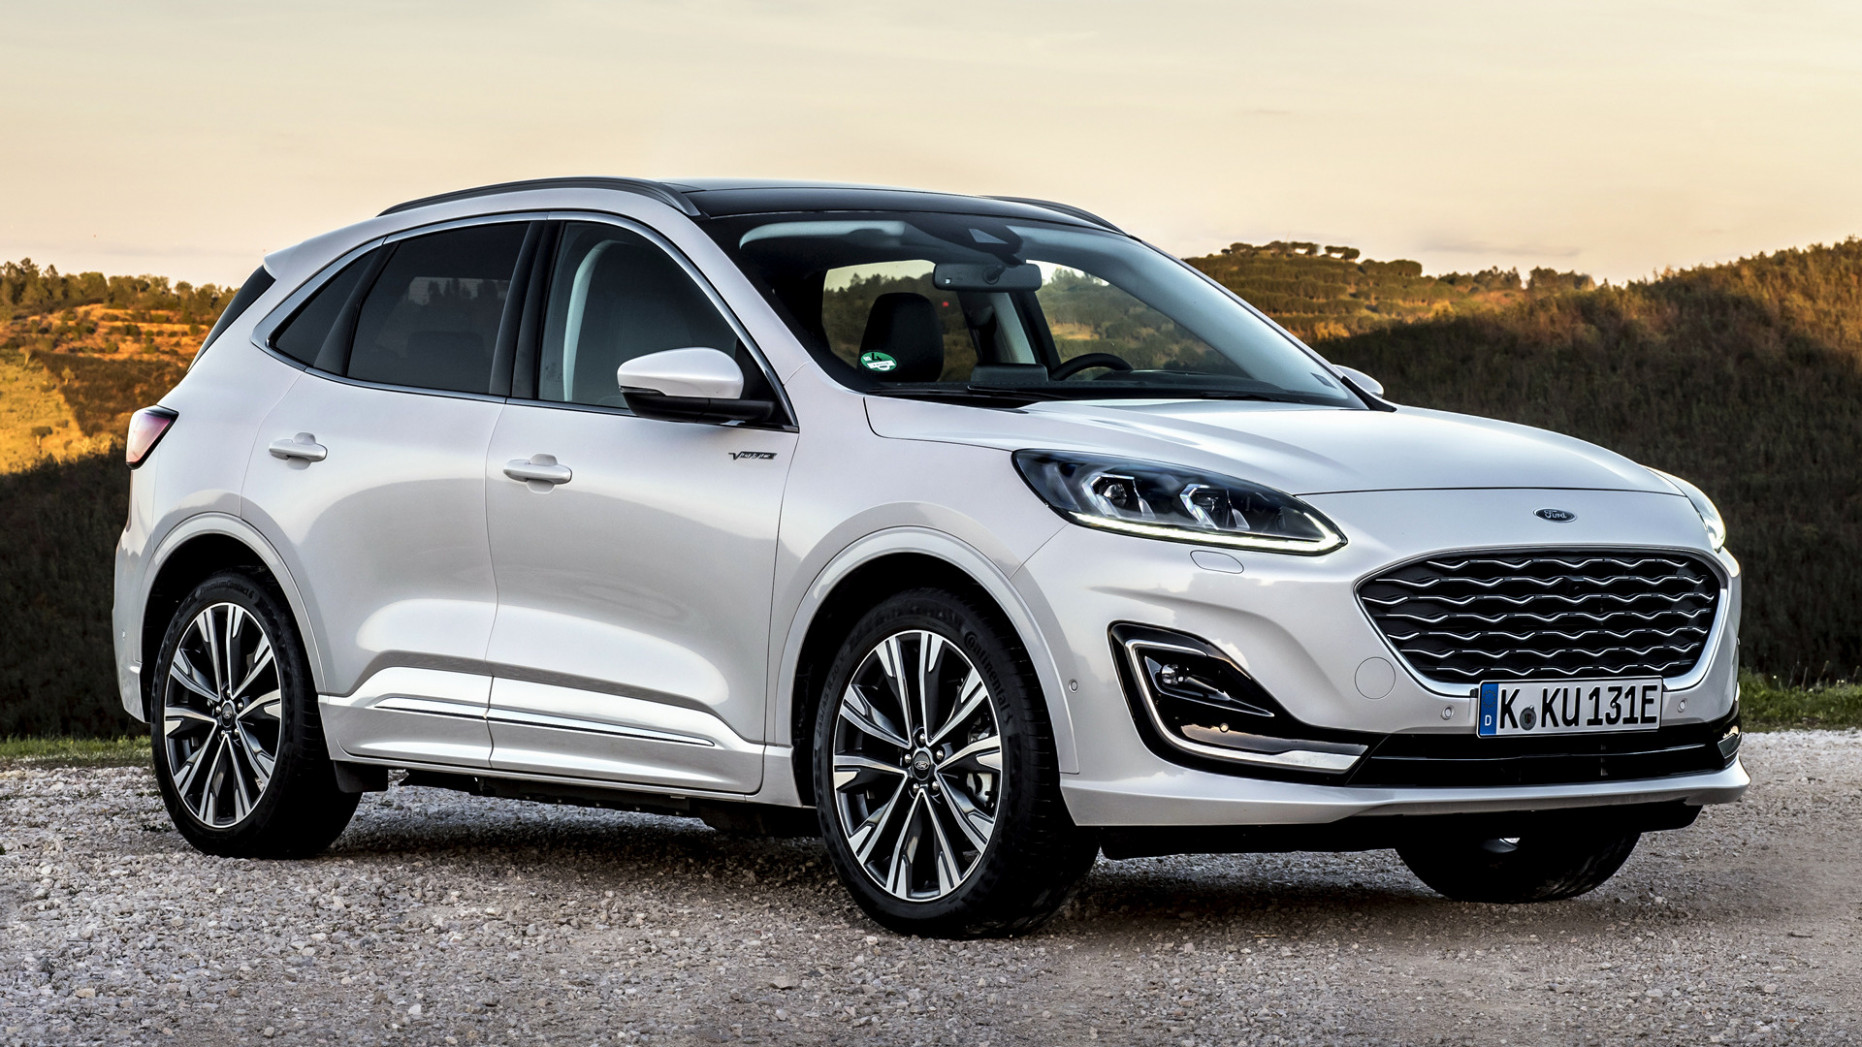 8 Ford Kuga Vignale Plug-In Hybrid - Wallpapers and HD Images ..